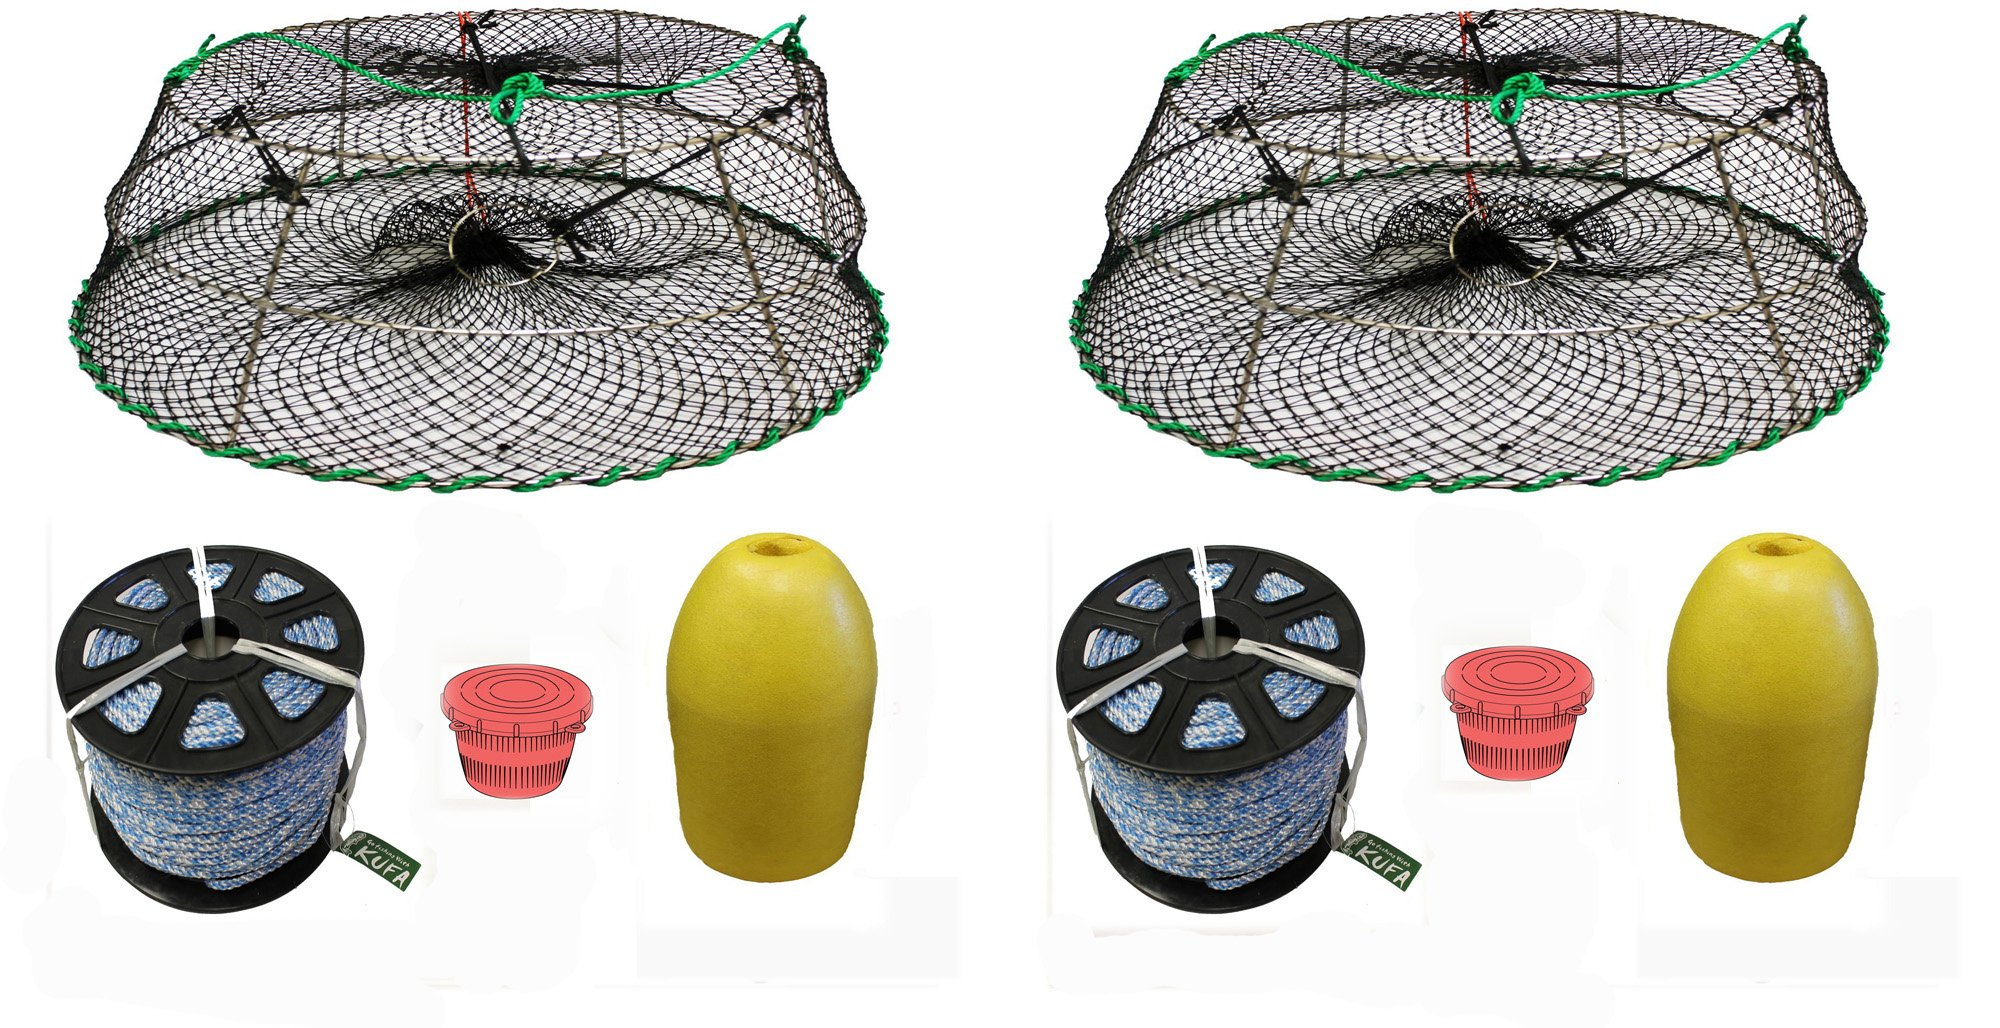 2-Pack of KUFA Sports Tower Style Prawn trap with 400' rope, Yellow float and Vented Bait Jar combo (CT77+PAS1)X2